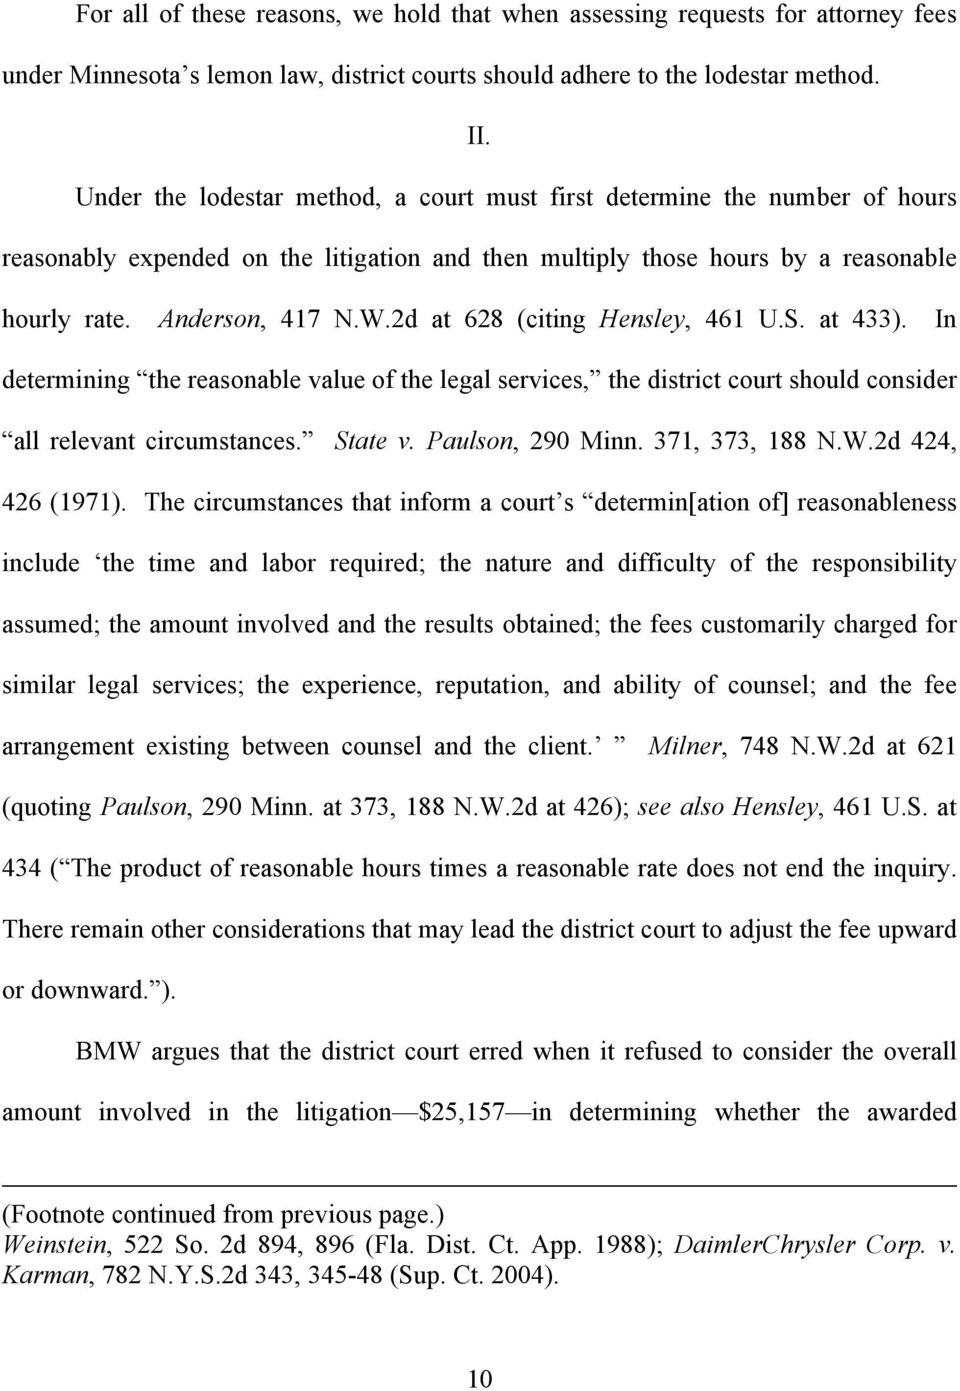 2d at 628 (citing Hensley, 461 U.S. at 433). In determining the reasonable value of the legal services, the district court should consider all relevant circumstances. State v. Paulson, 290 Minn.